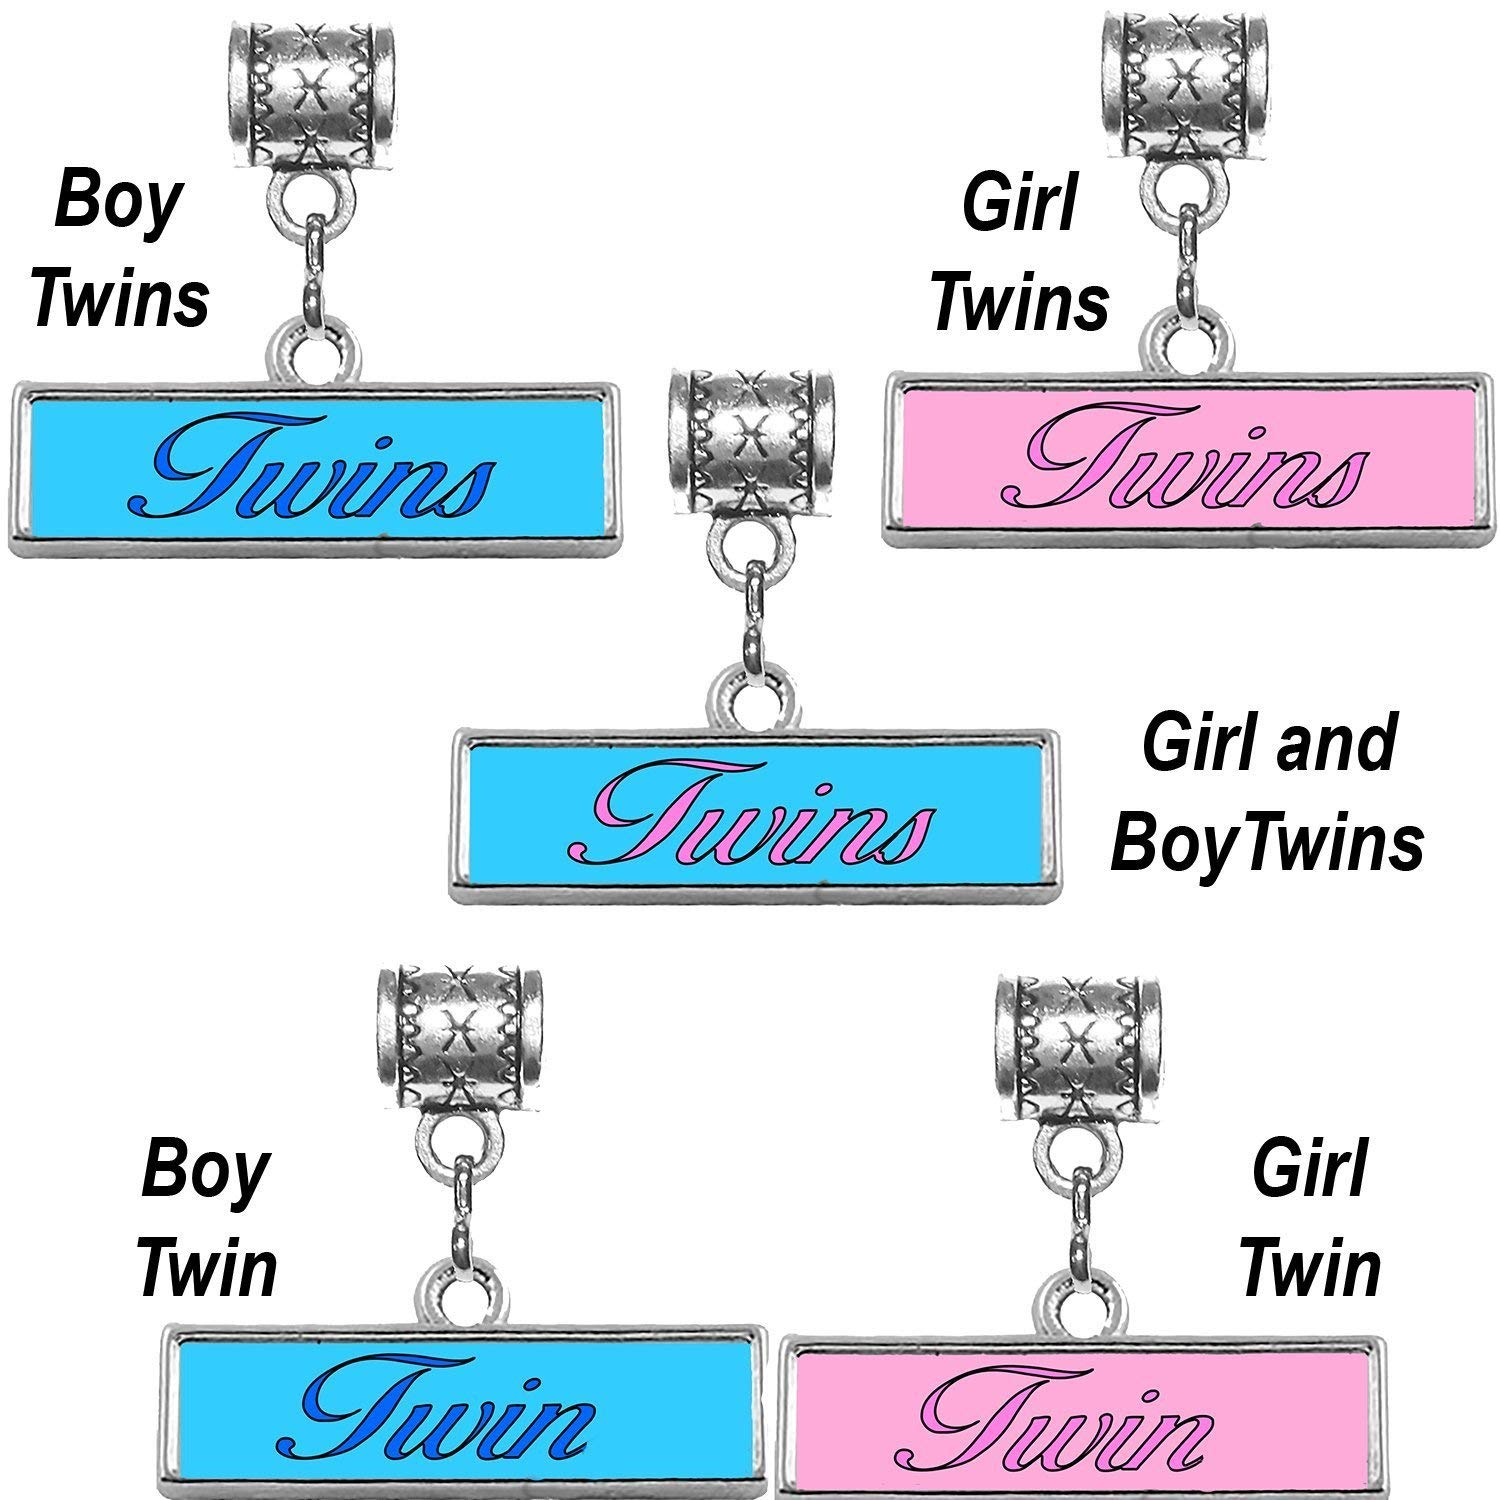 """Twins charm"" or ""Twin charm"" in antique silver in your choice of colors by Mossy Cabin for modern large hole snake chain charm bracelets, or add to a neck chain, pendant necklace or key chain"